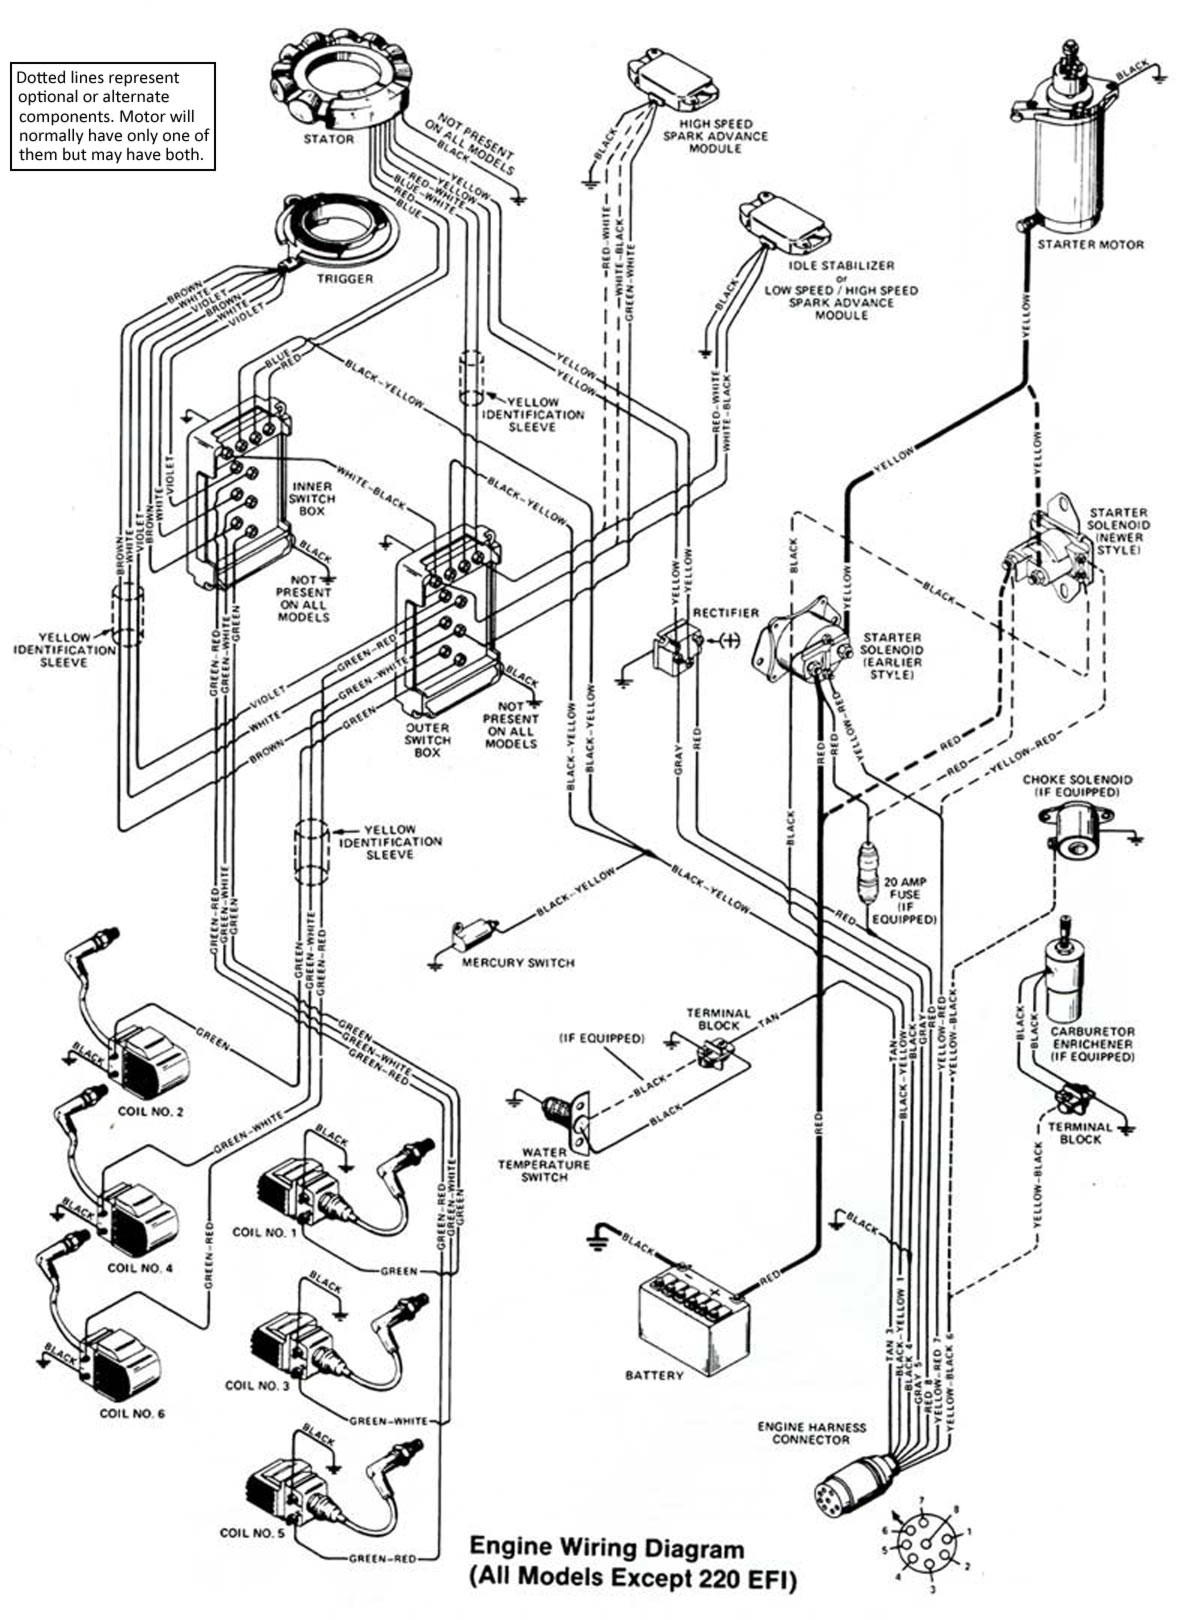 200 Hp Mercury Outboard Wiring Diagram Good 1st 25 135 Library Rh 55 Skriptoase De Engine 2 Cylinder